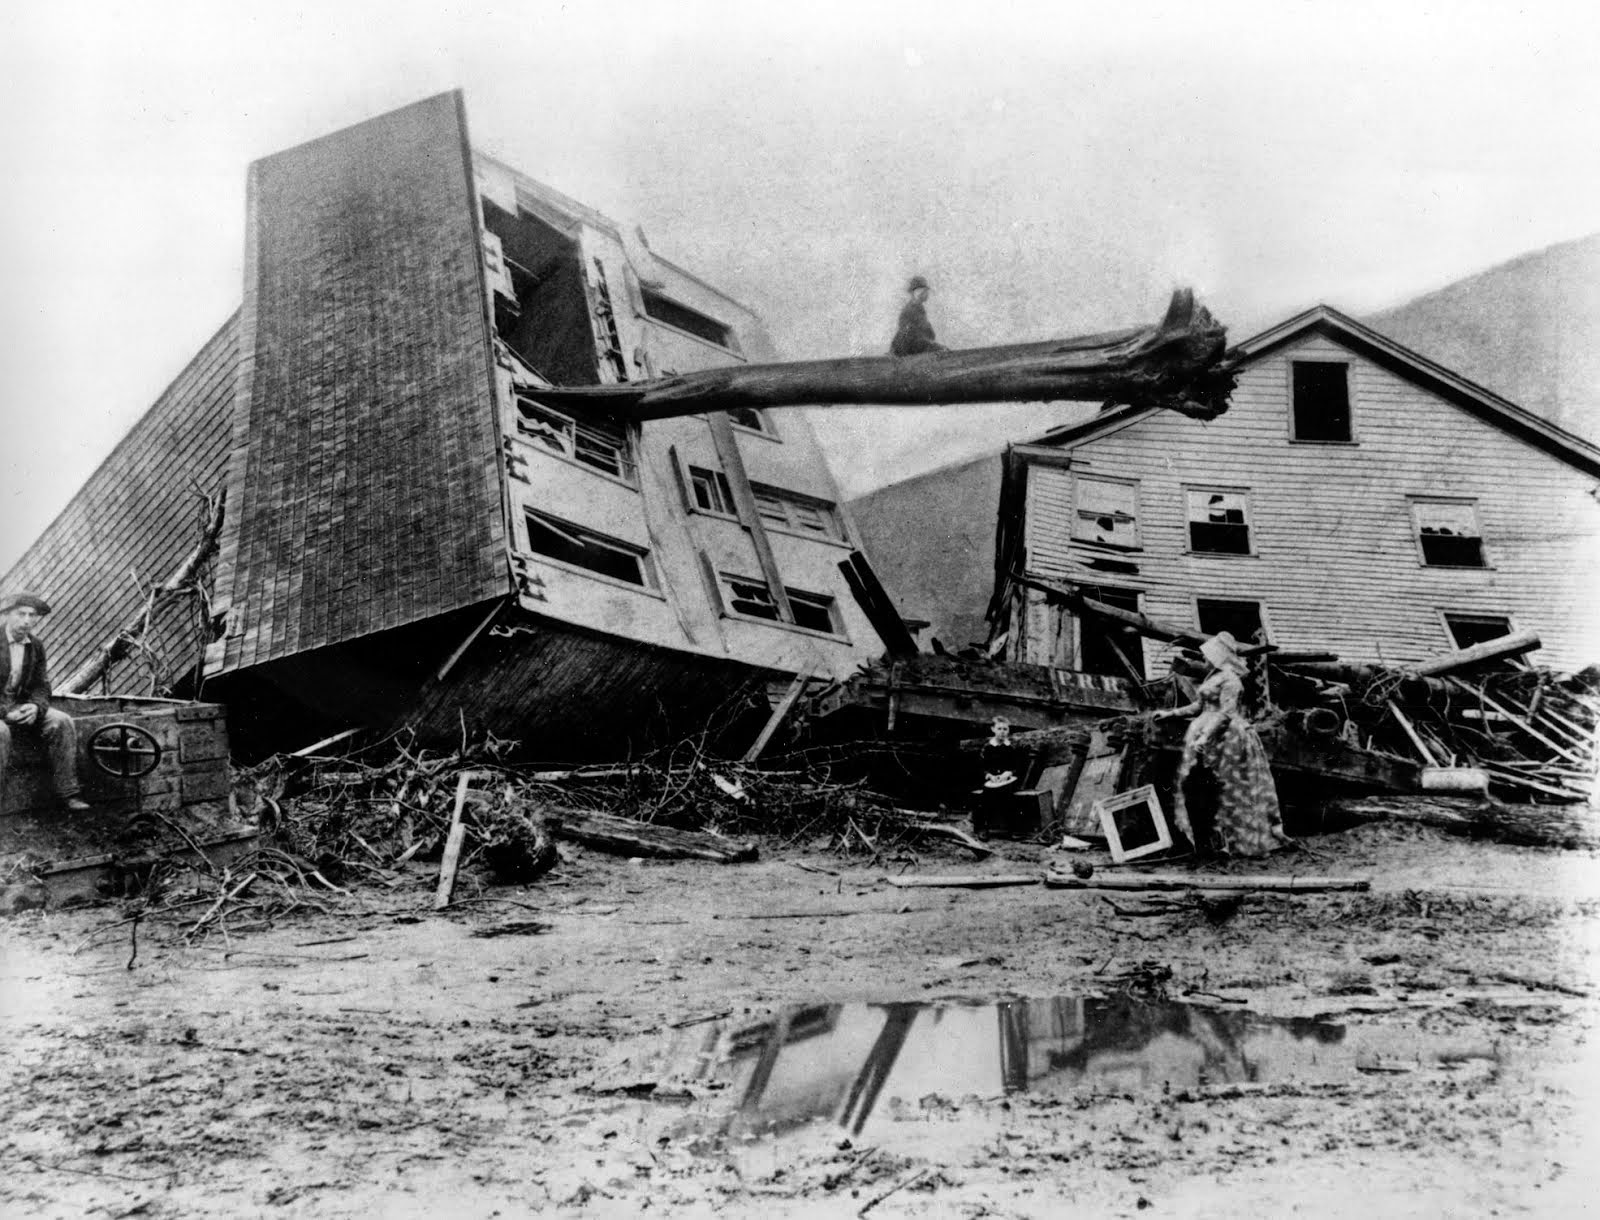 OUR MOST HORRIFIC DAY: THE JOHNSTOWN FLOOD